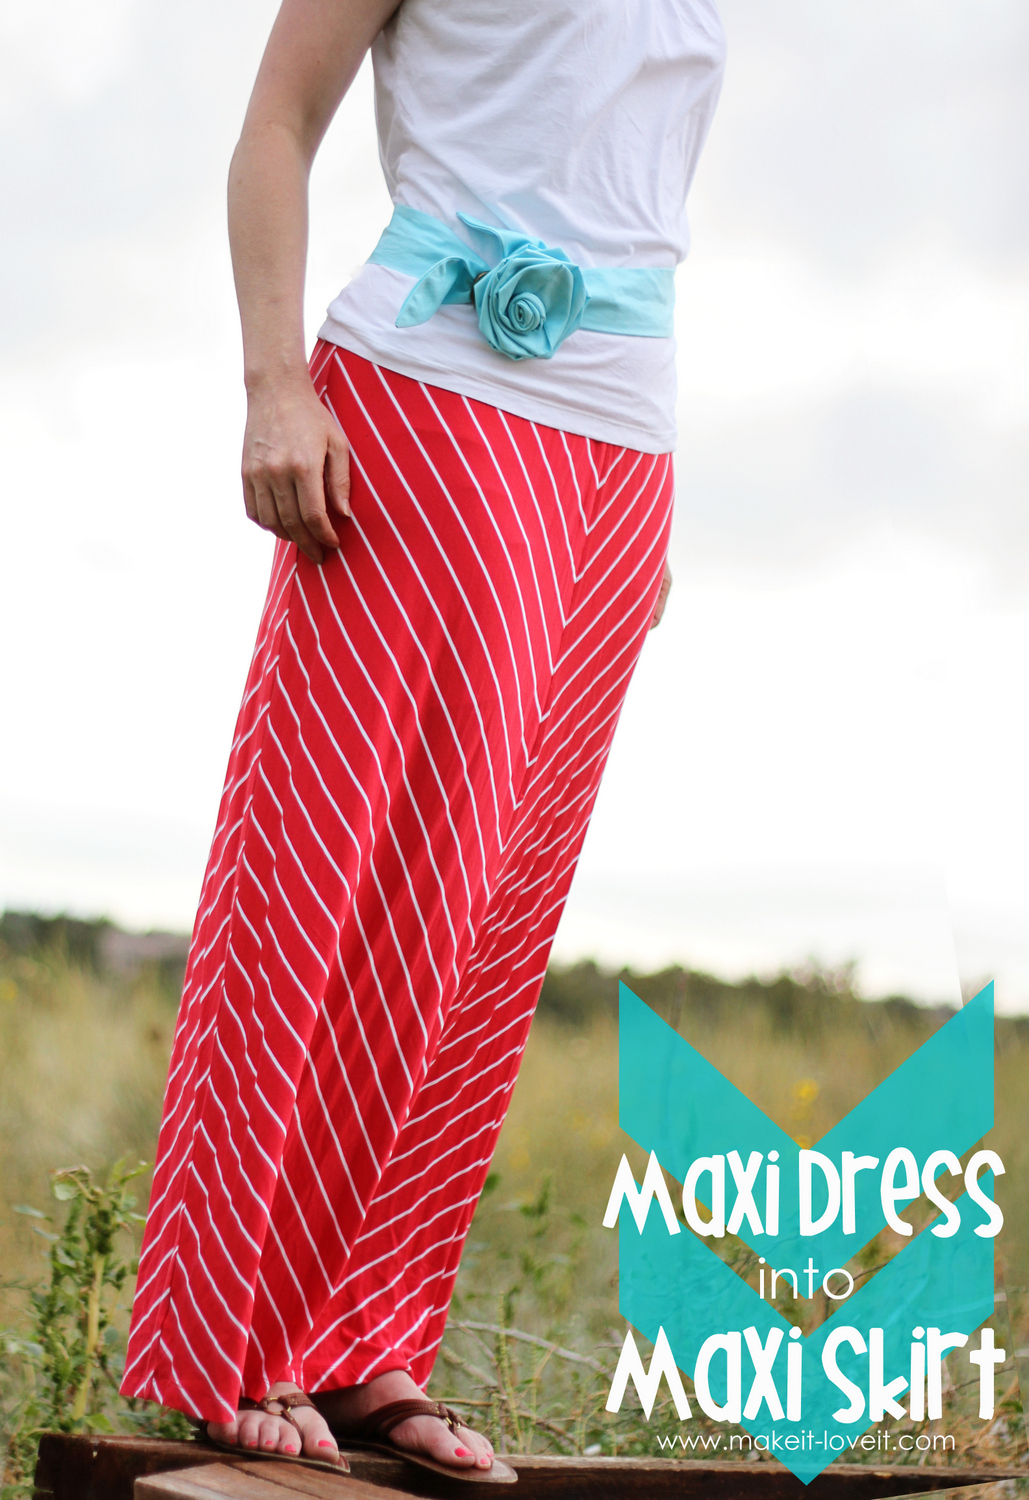 maxi dress into maxi skirt-002